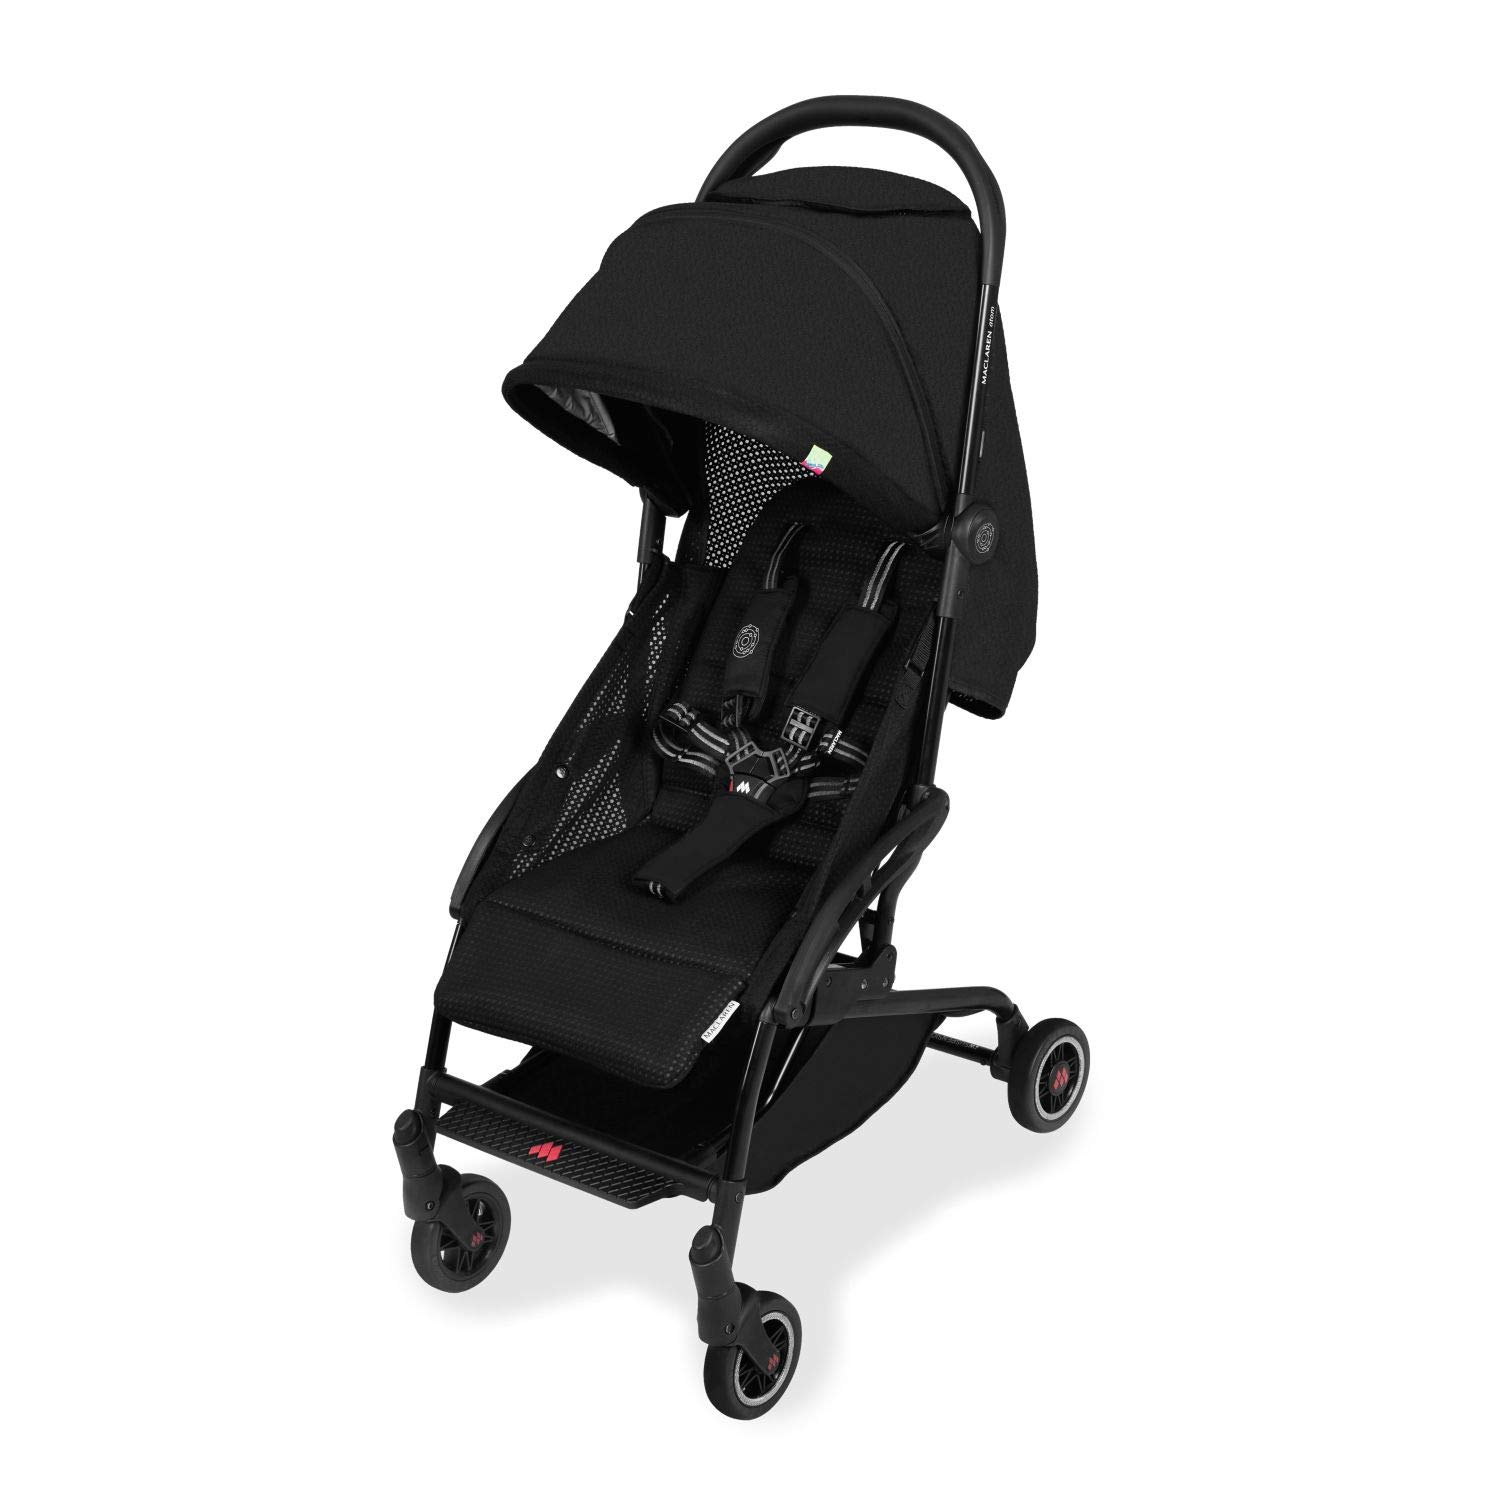 Maclaren Atom Style Set Travel System- Super Lightweight, Ultra-Compact Stroller, Fits On Airplane's Overhead Storage. Car Seat Compatible. Loaded with Accessories. Multi-Position Reclining Seat by Maclaren